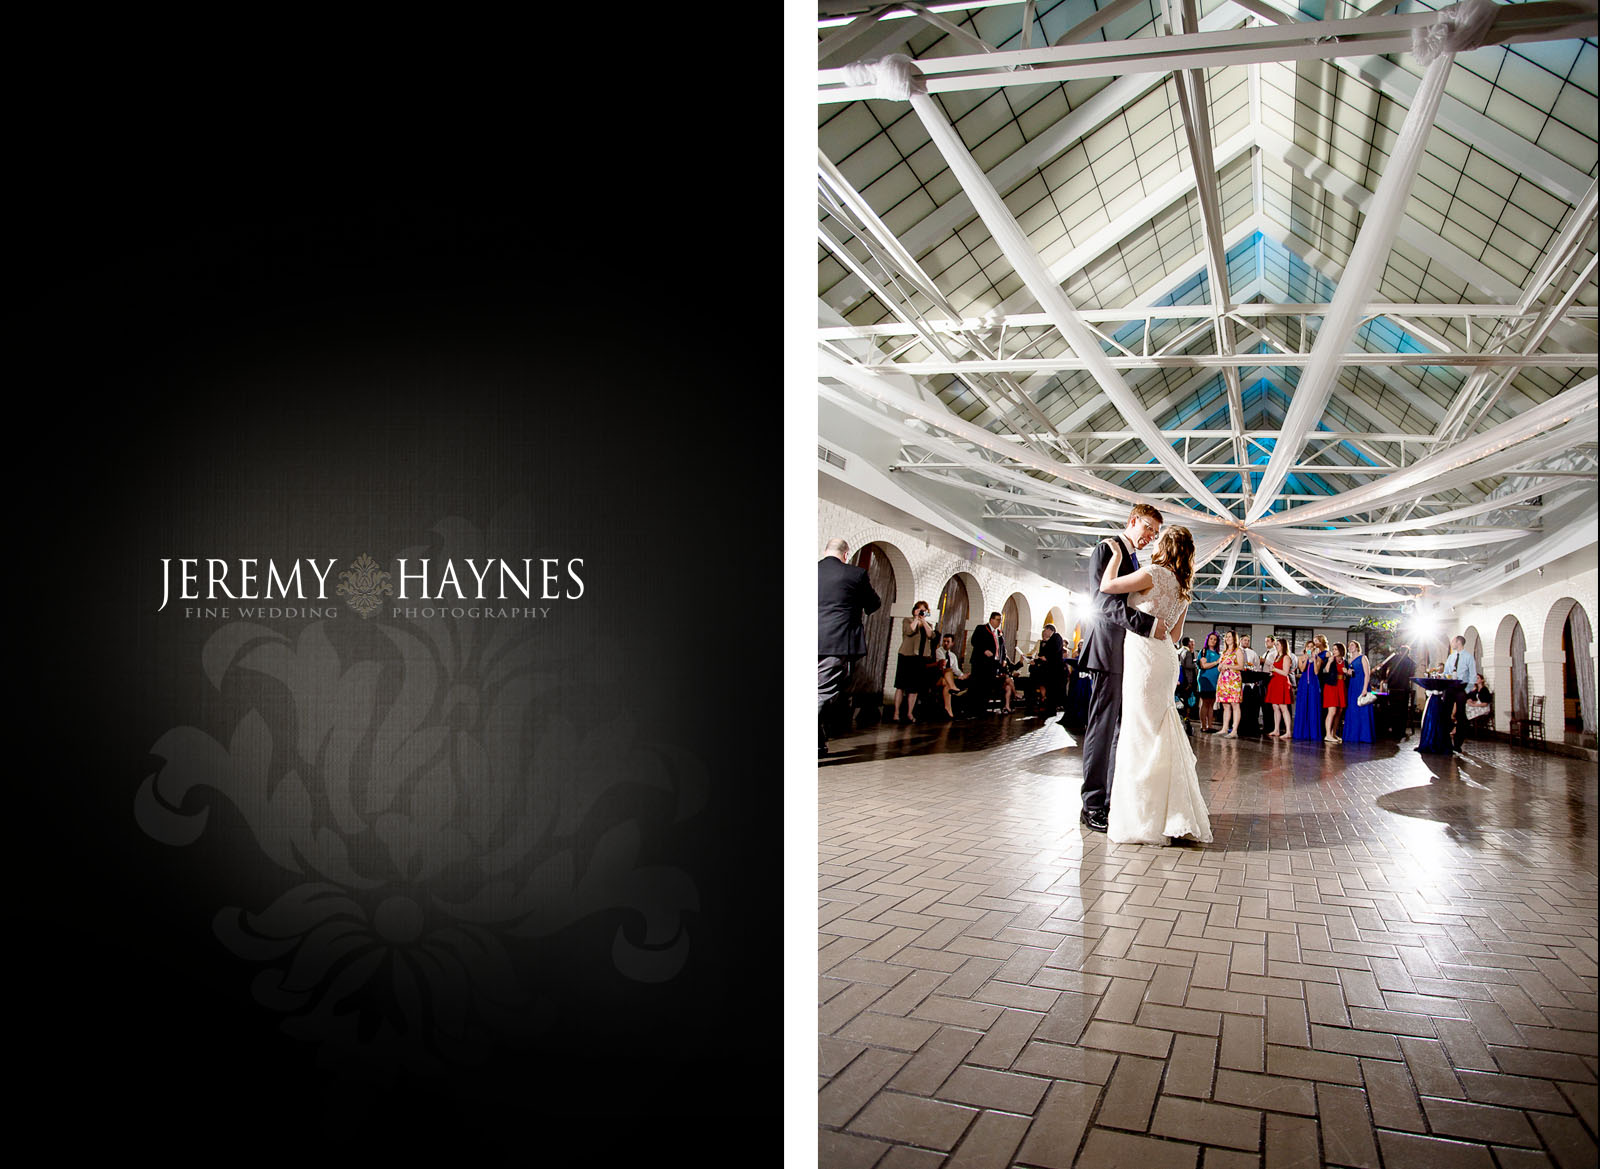 pipers-at-the-marott-wedding-first-dance-indianapolis-jeremy-haynes-photography.jpg